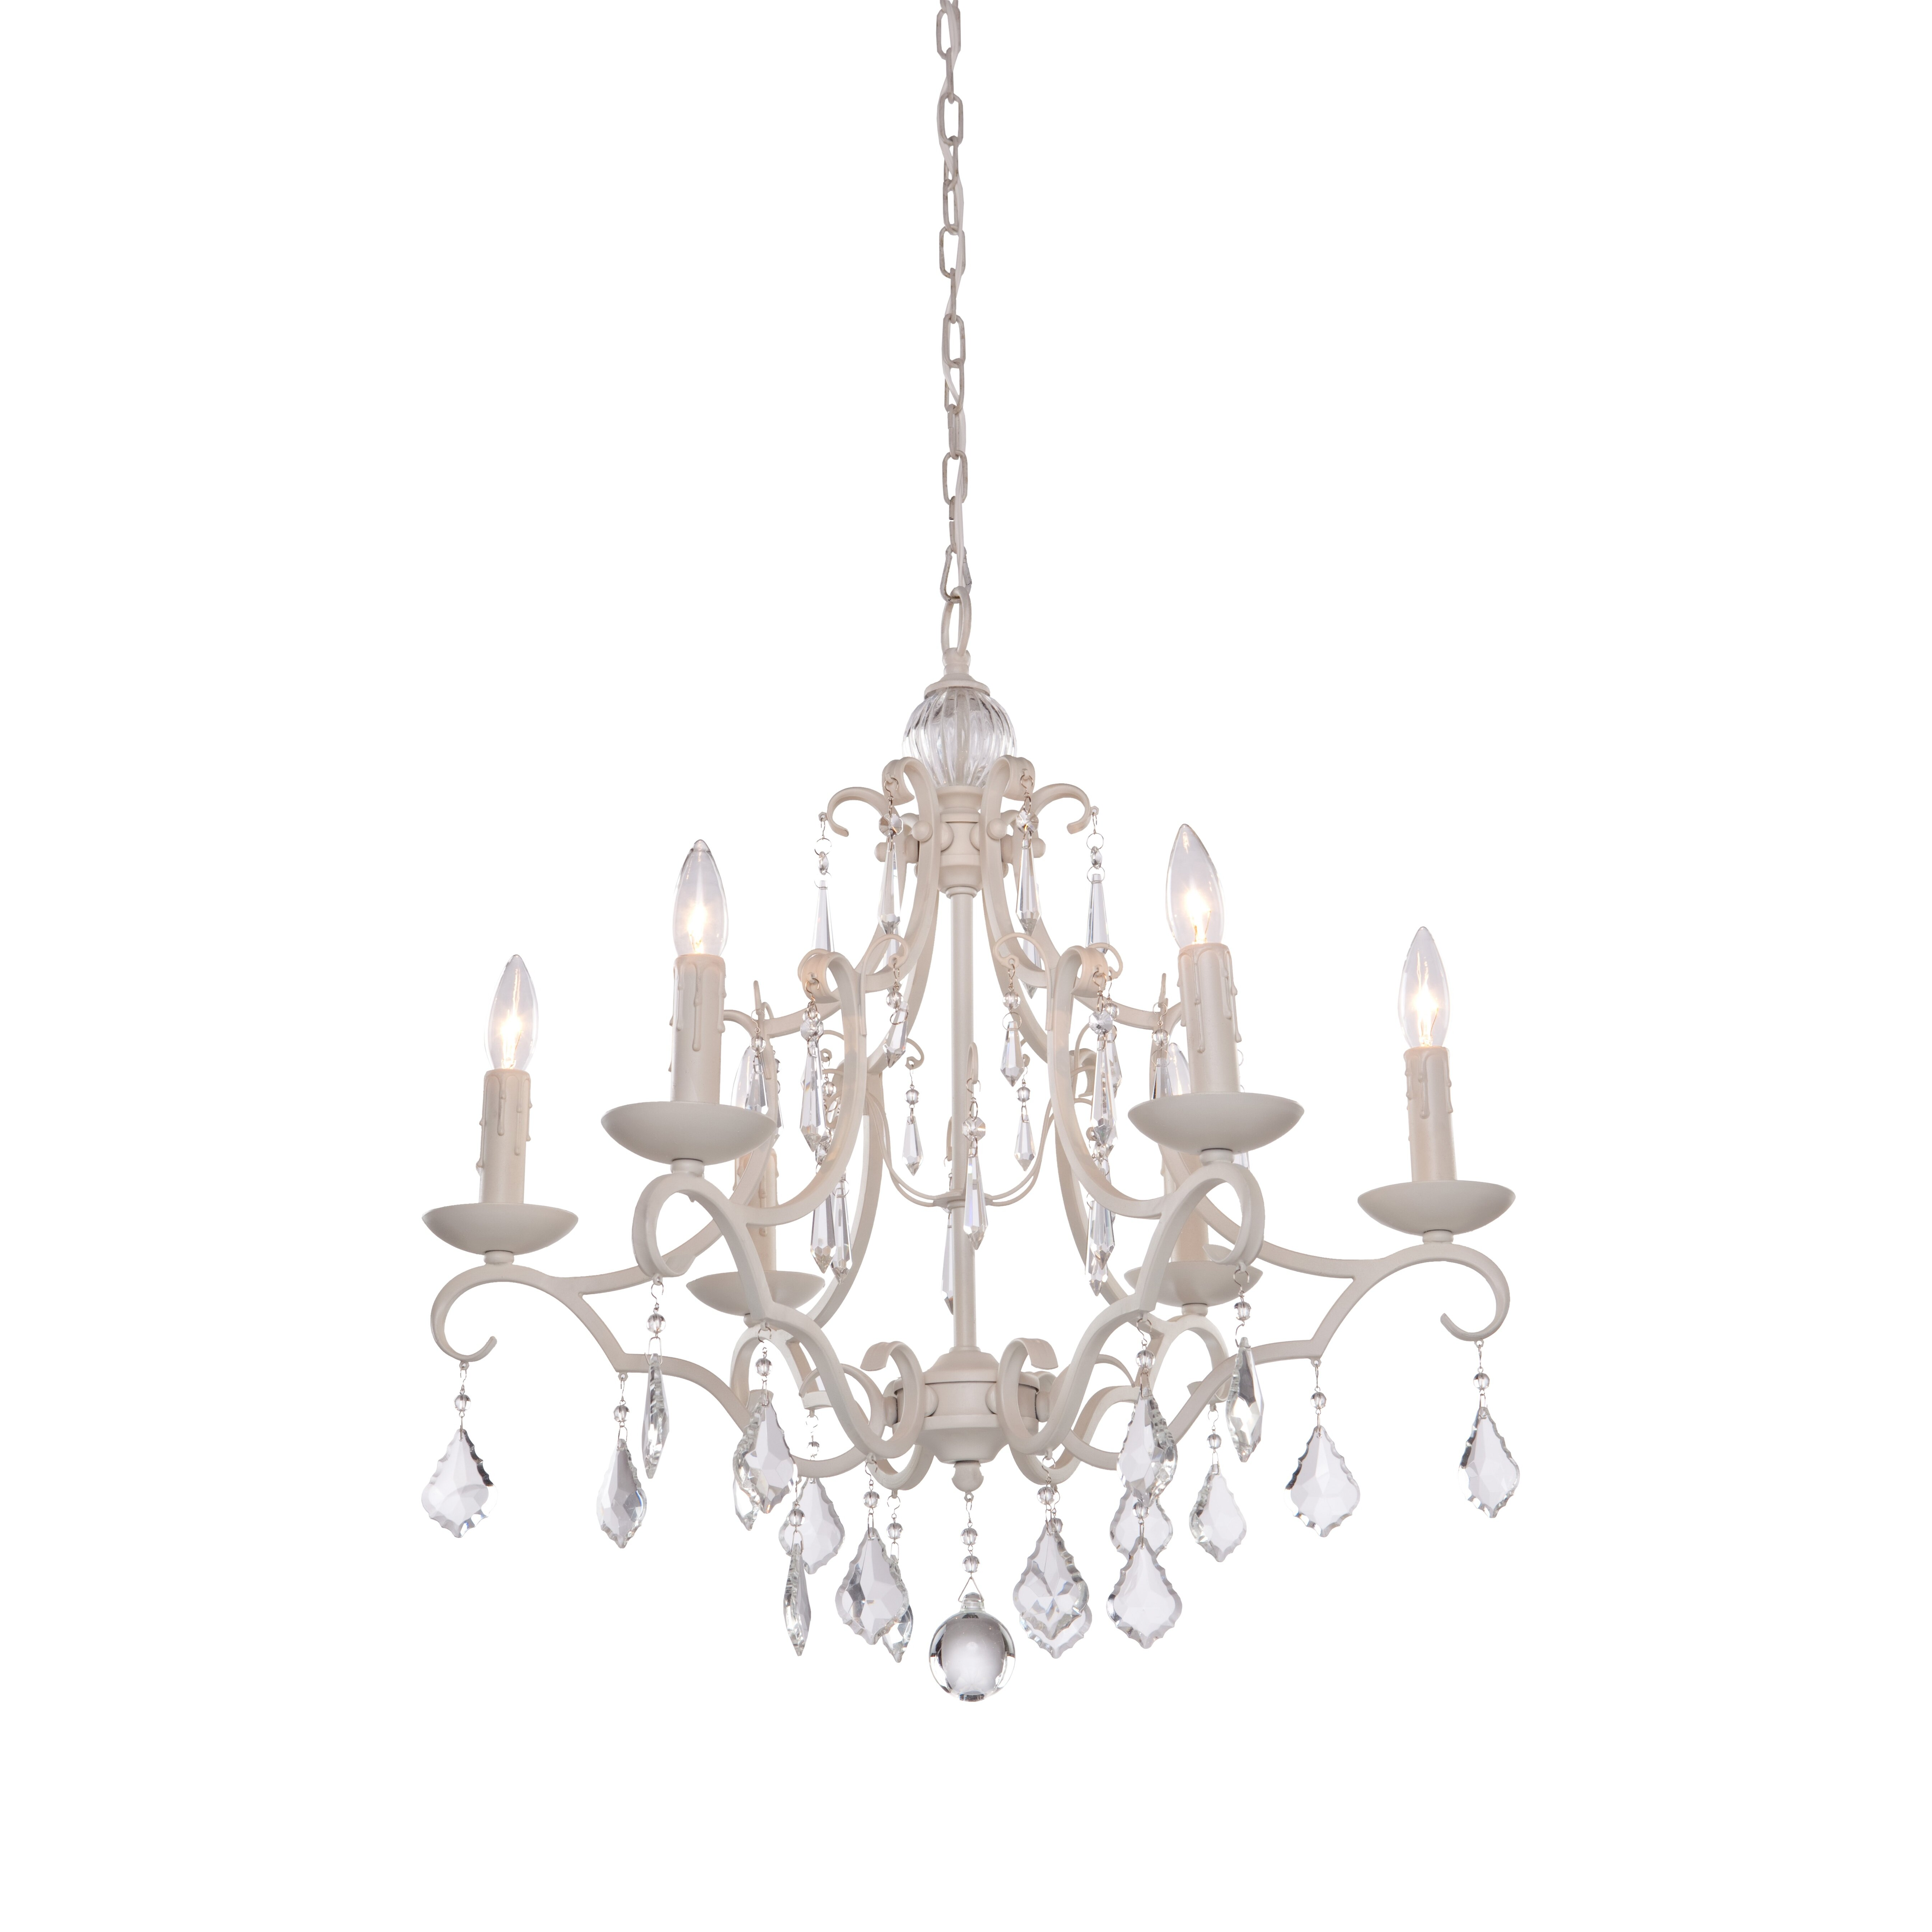 Artcraft Lighting Vintage Candle Chandelier Reviews